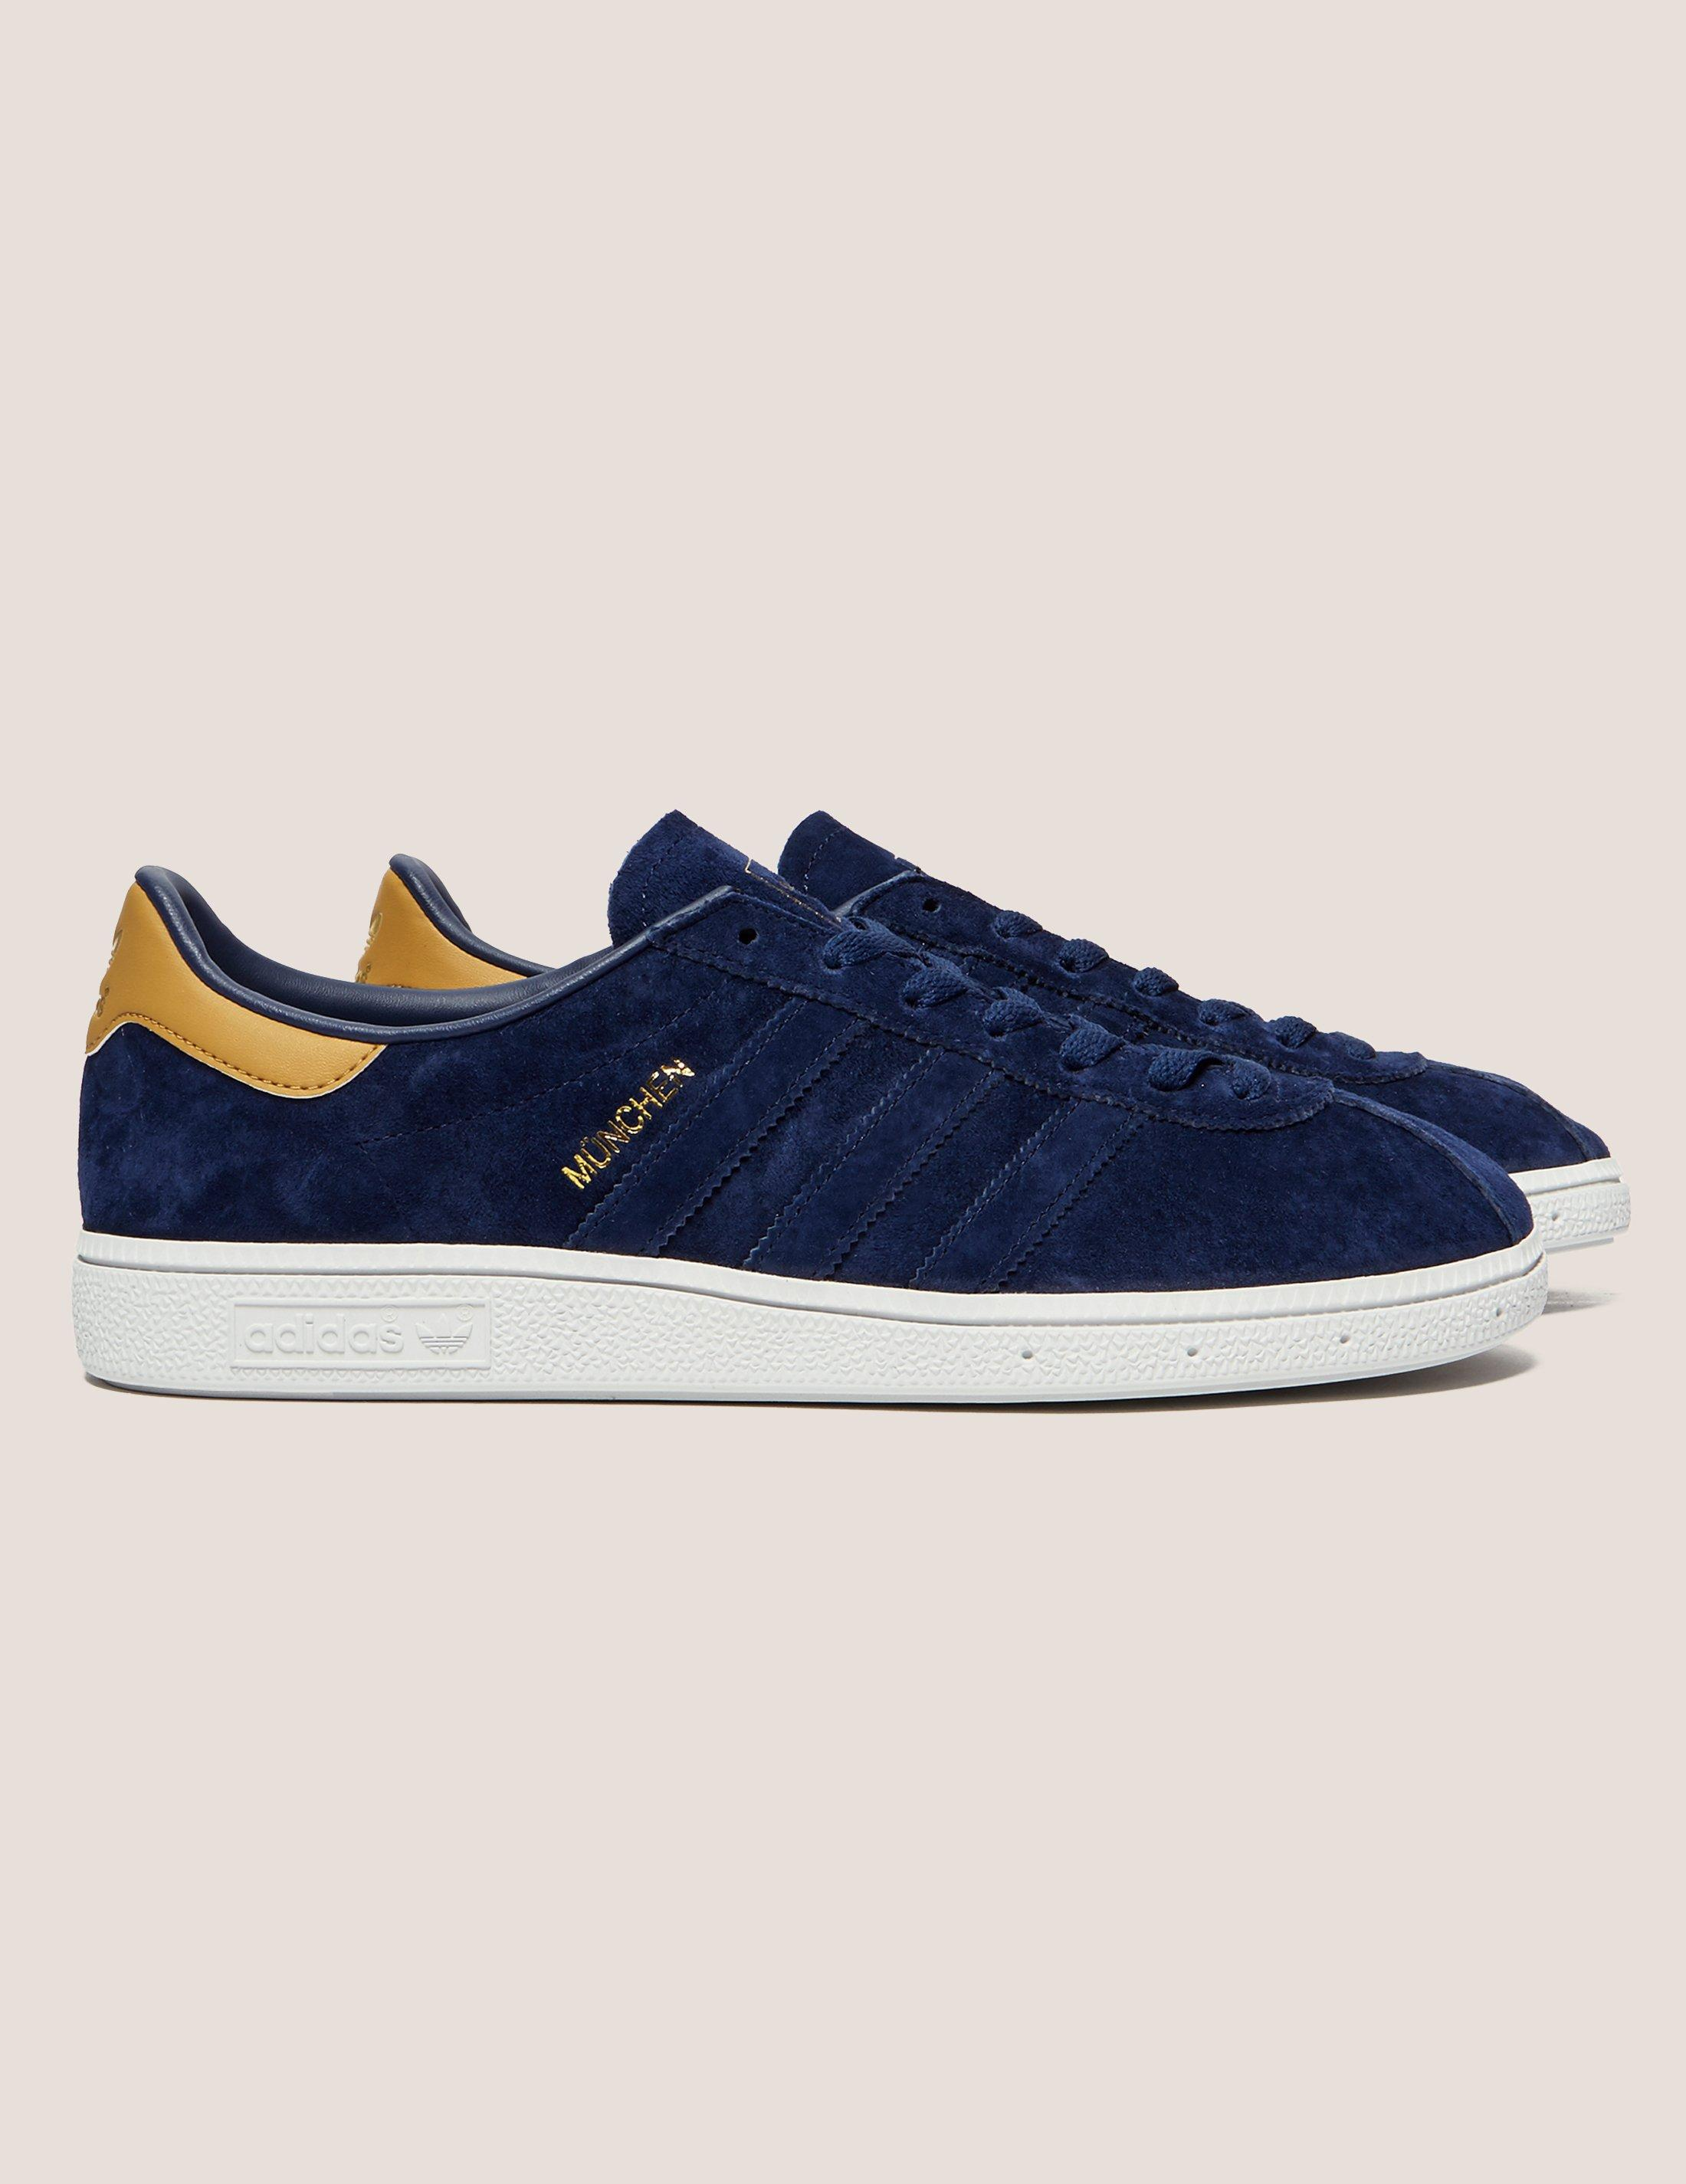 986acdee4fd6 Adidas Originals Mens Munchen Dark Blue in Blue for Men - Lyst